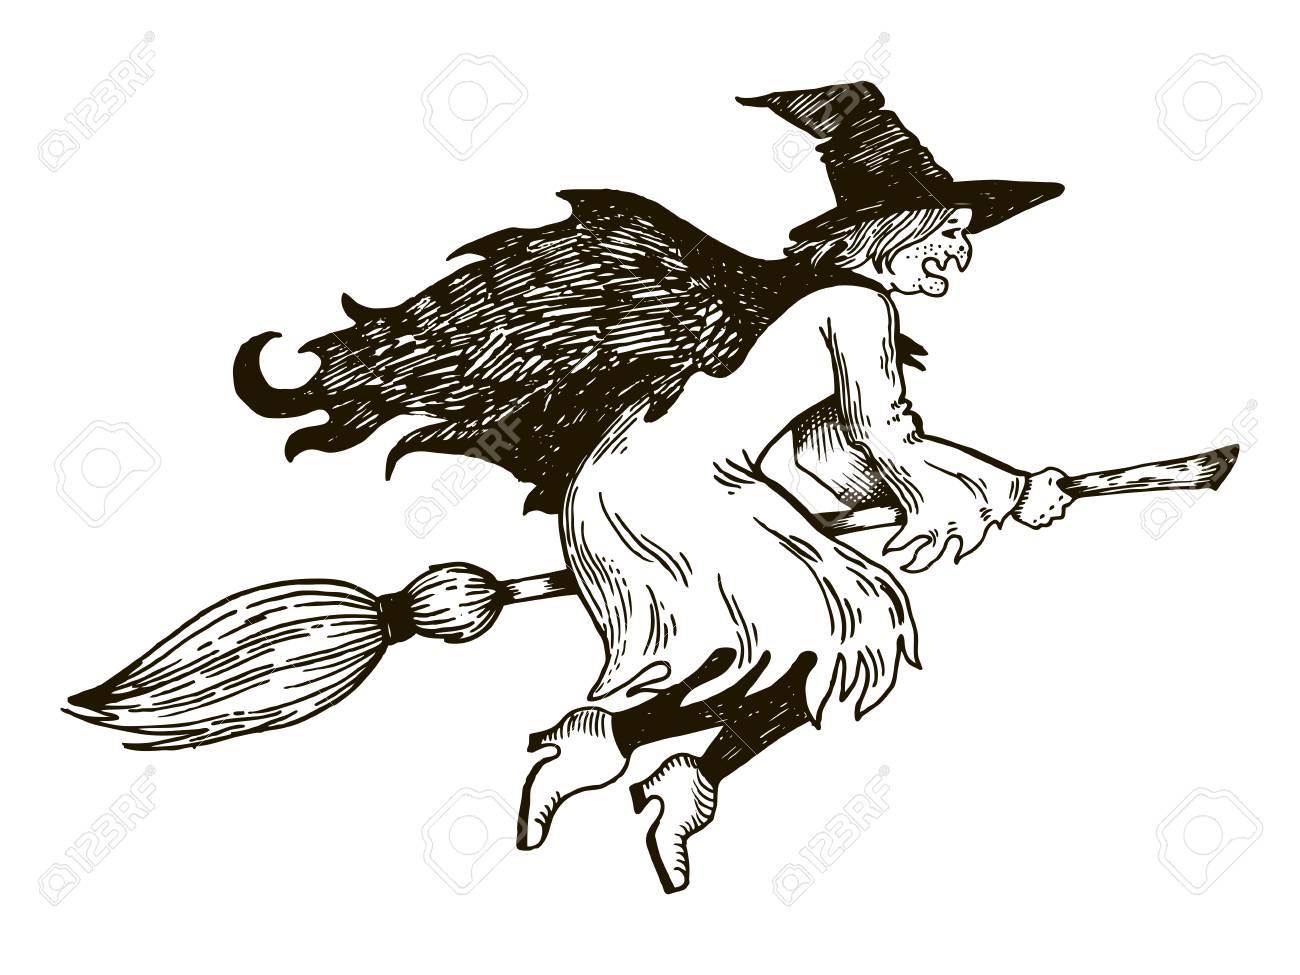 1300x975 Witch Flying On Broomstick Engraving Vector Illustration. Royalty